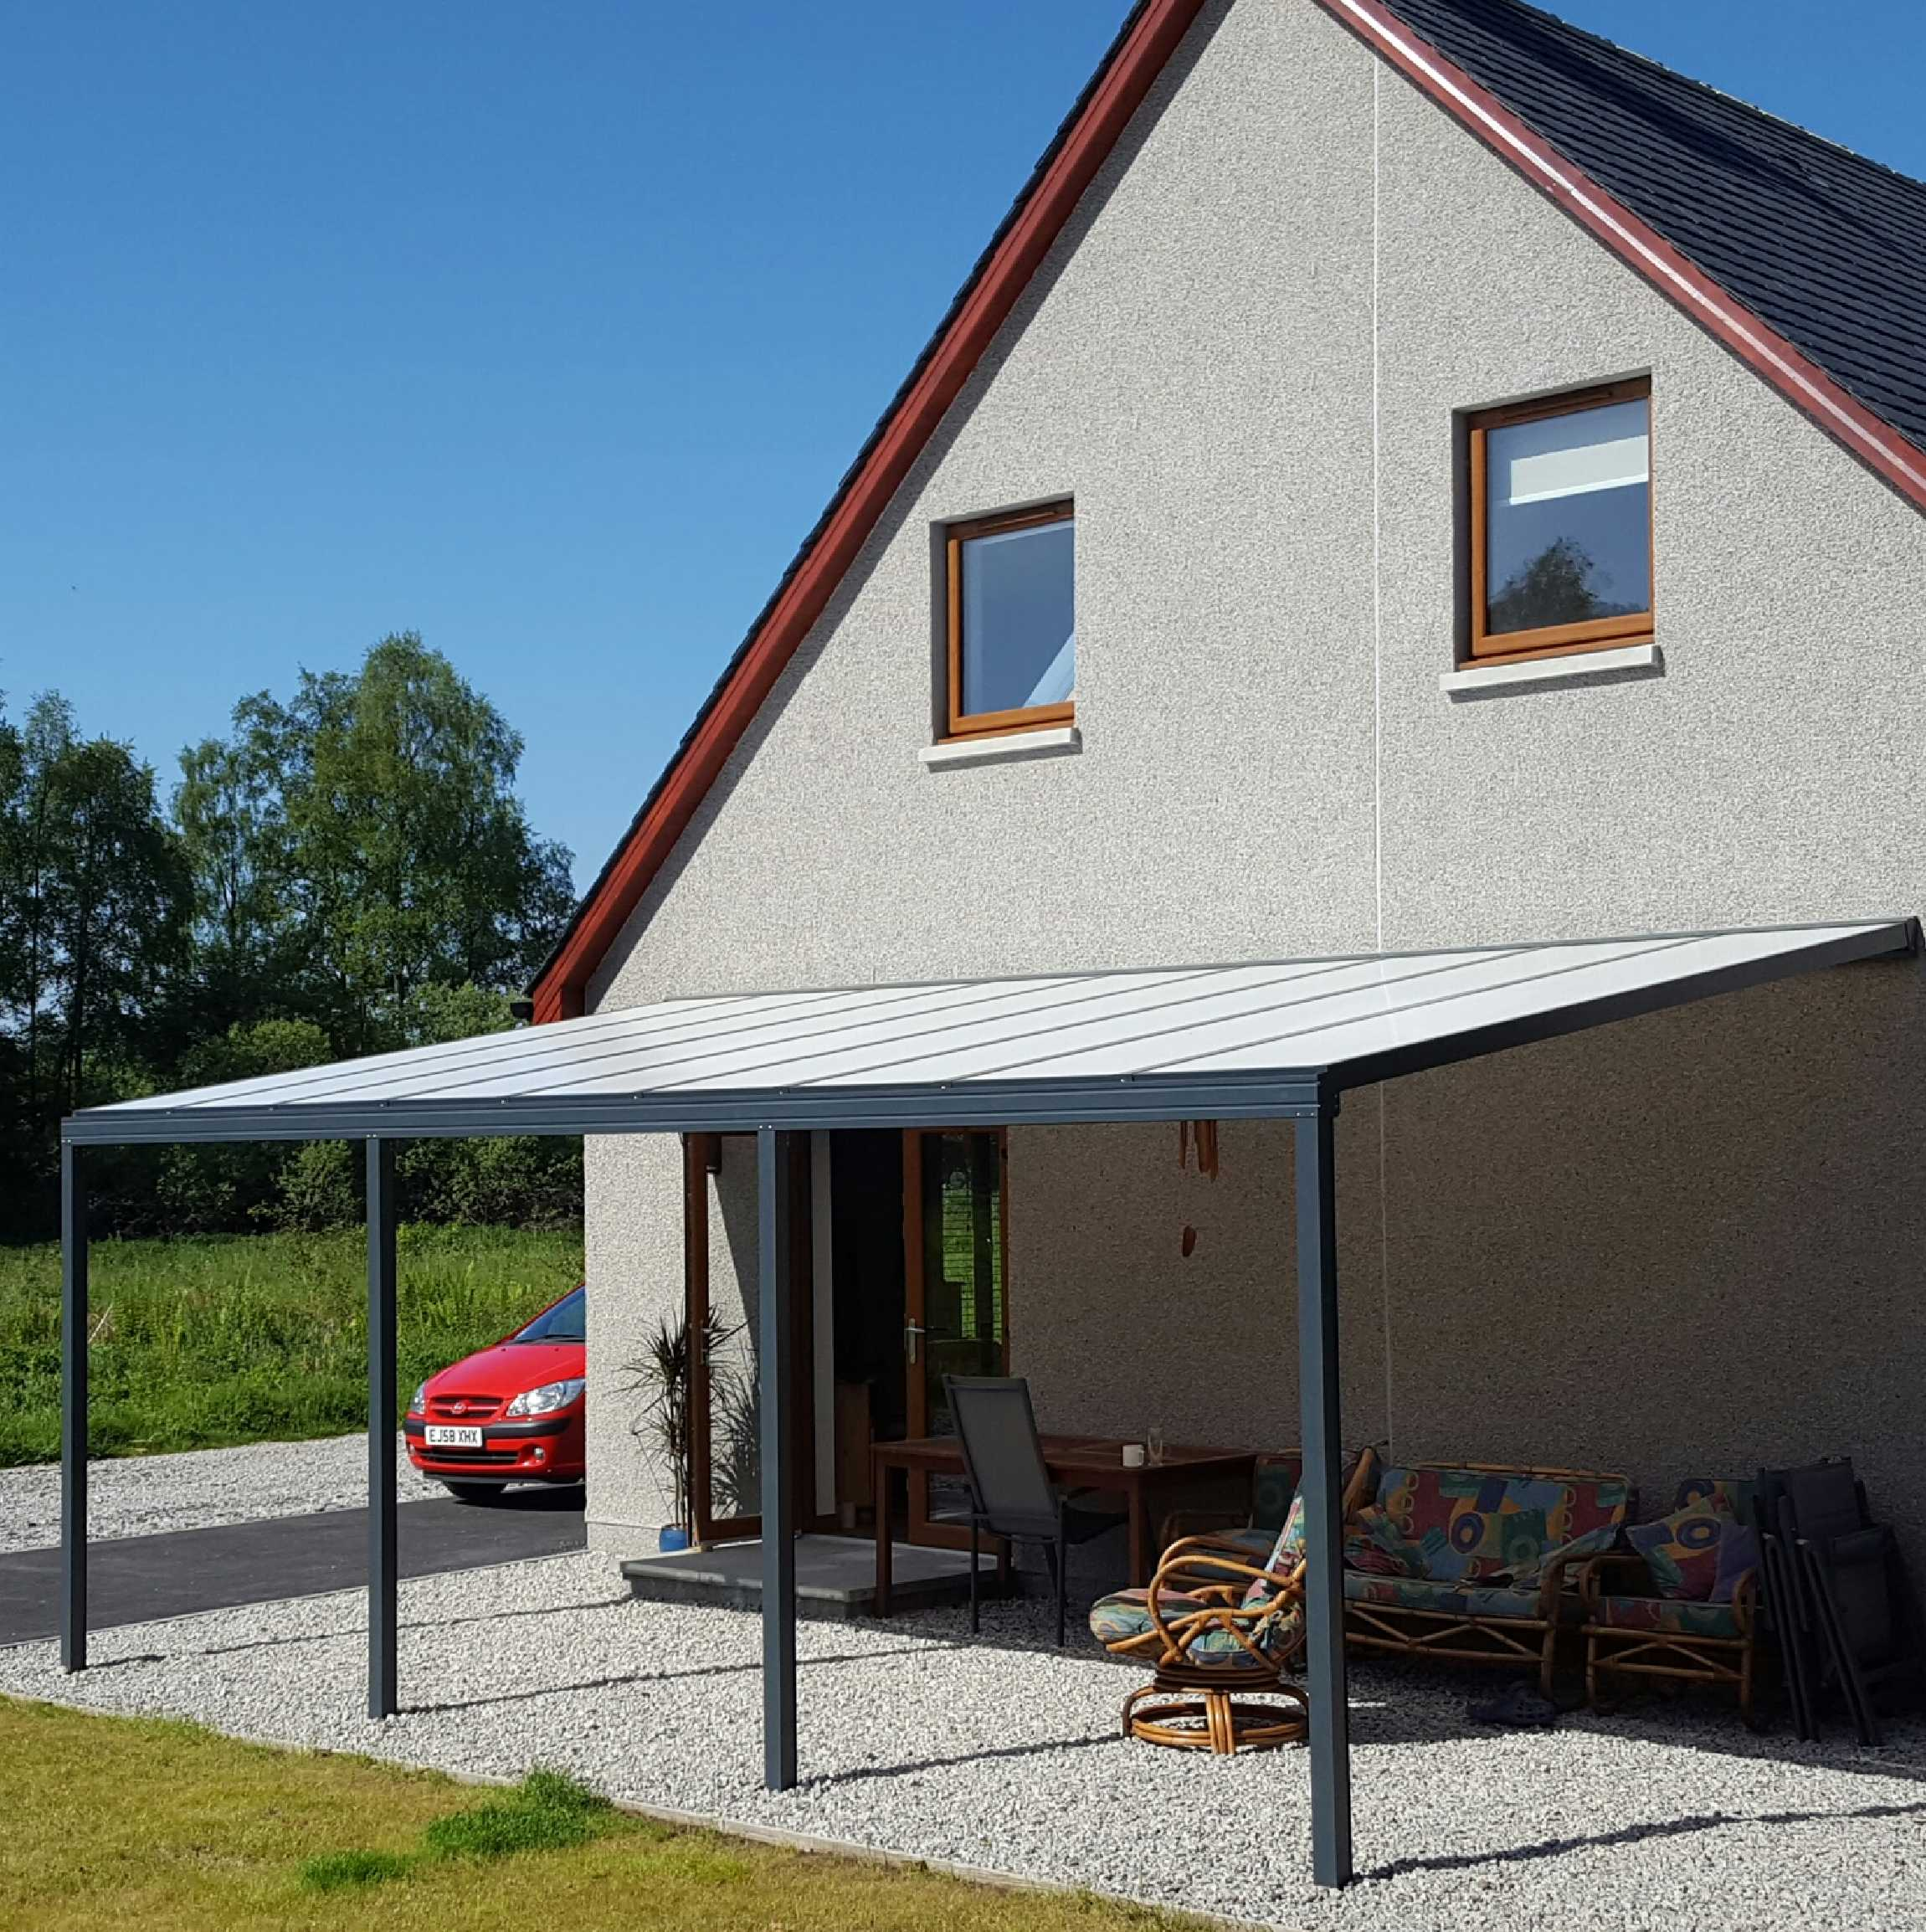 Great selection of Omega Smart Lean-To Canopy, Anthracite Grey, 16mm Polycarbonate Glazing - 9.5m (W) x 1.5m (P), (5) Supporting Posts